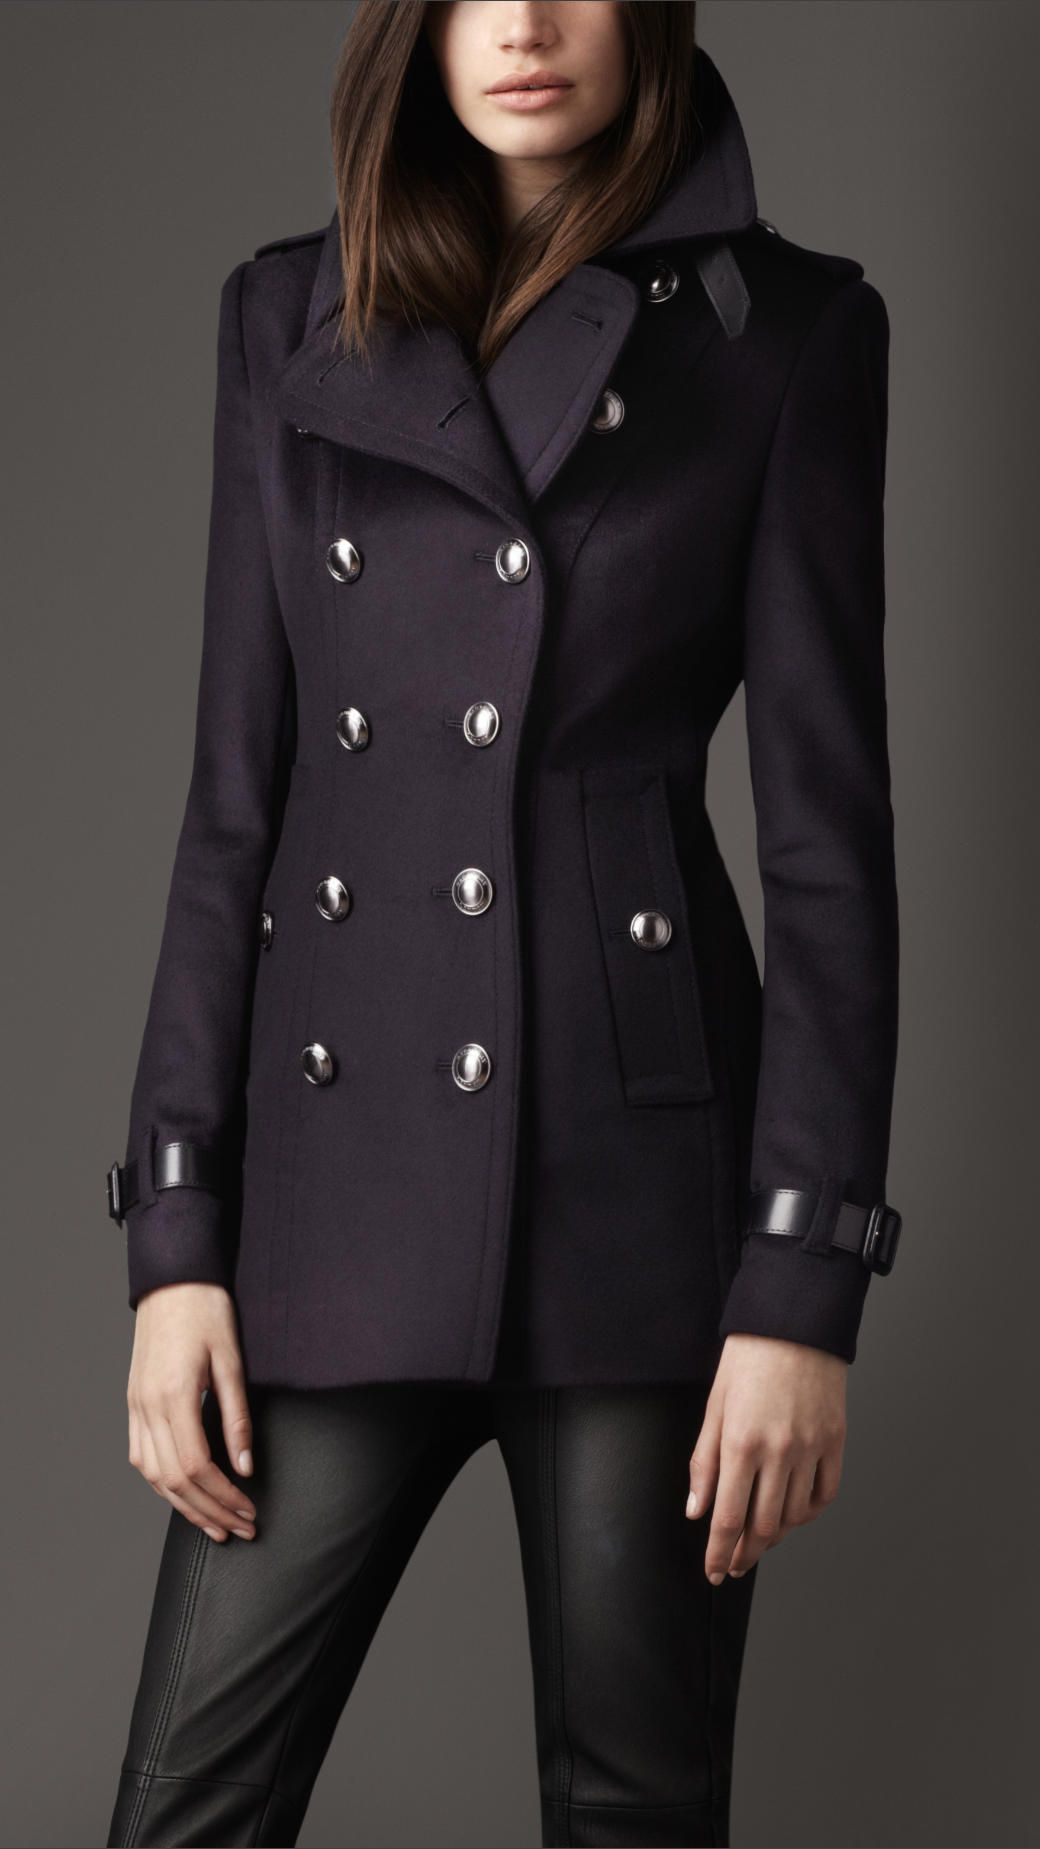 Burberry Short Wool Cashmere Trench Coat in Blue (navy) | Fashion ...